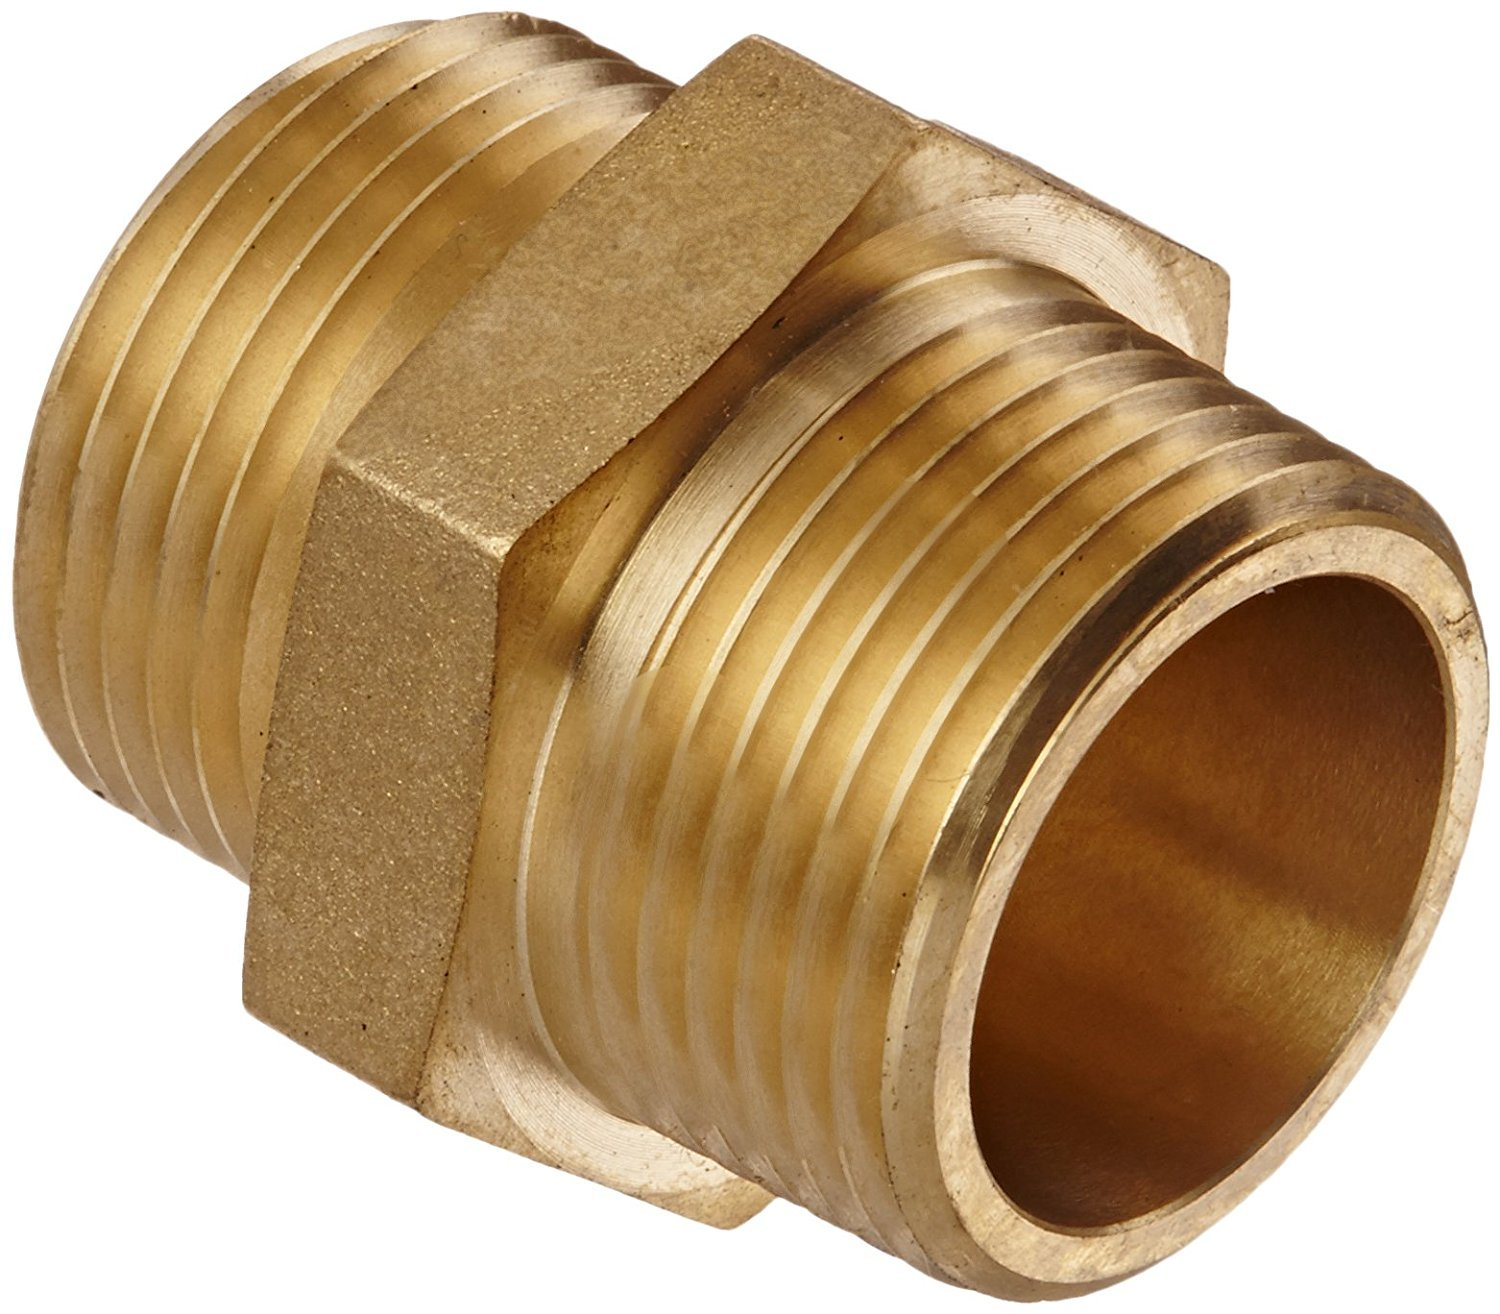 Campbell Fittings DMH1010 Double Male Hex Nipple, 1'' ID, Brass, 1'' NPT x 1'' NPSH by Campbell Fittings